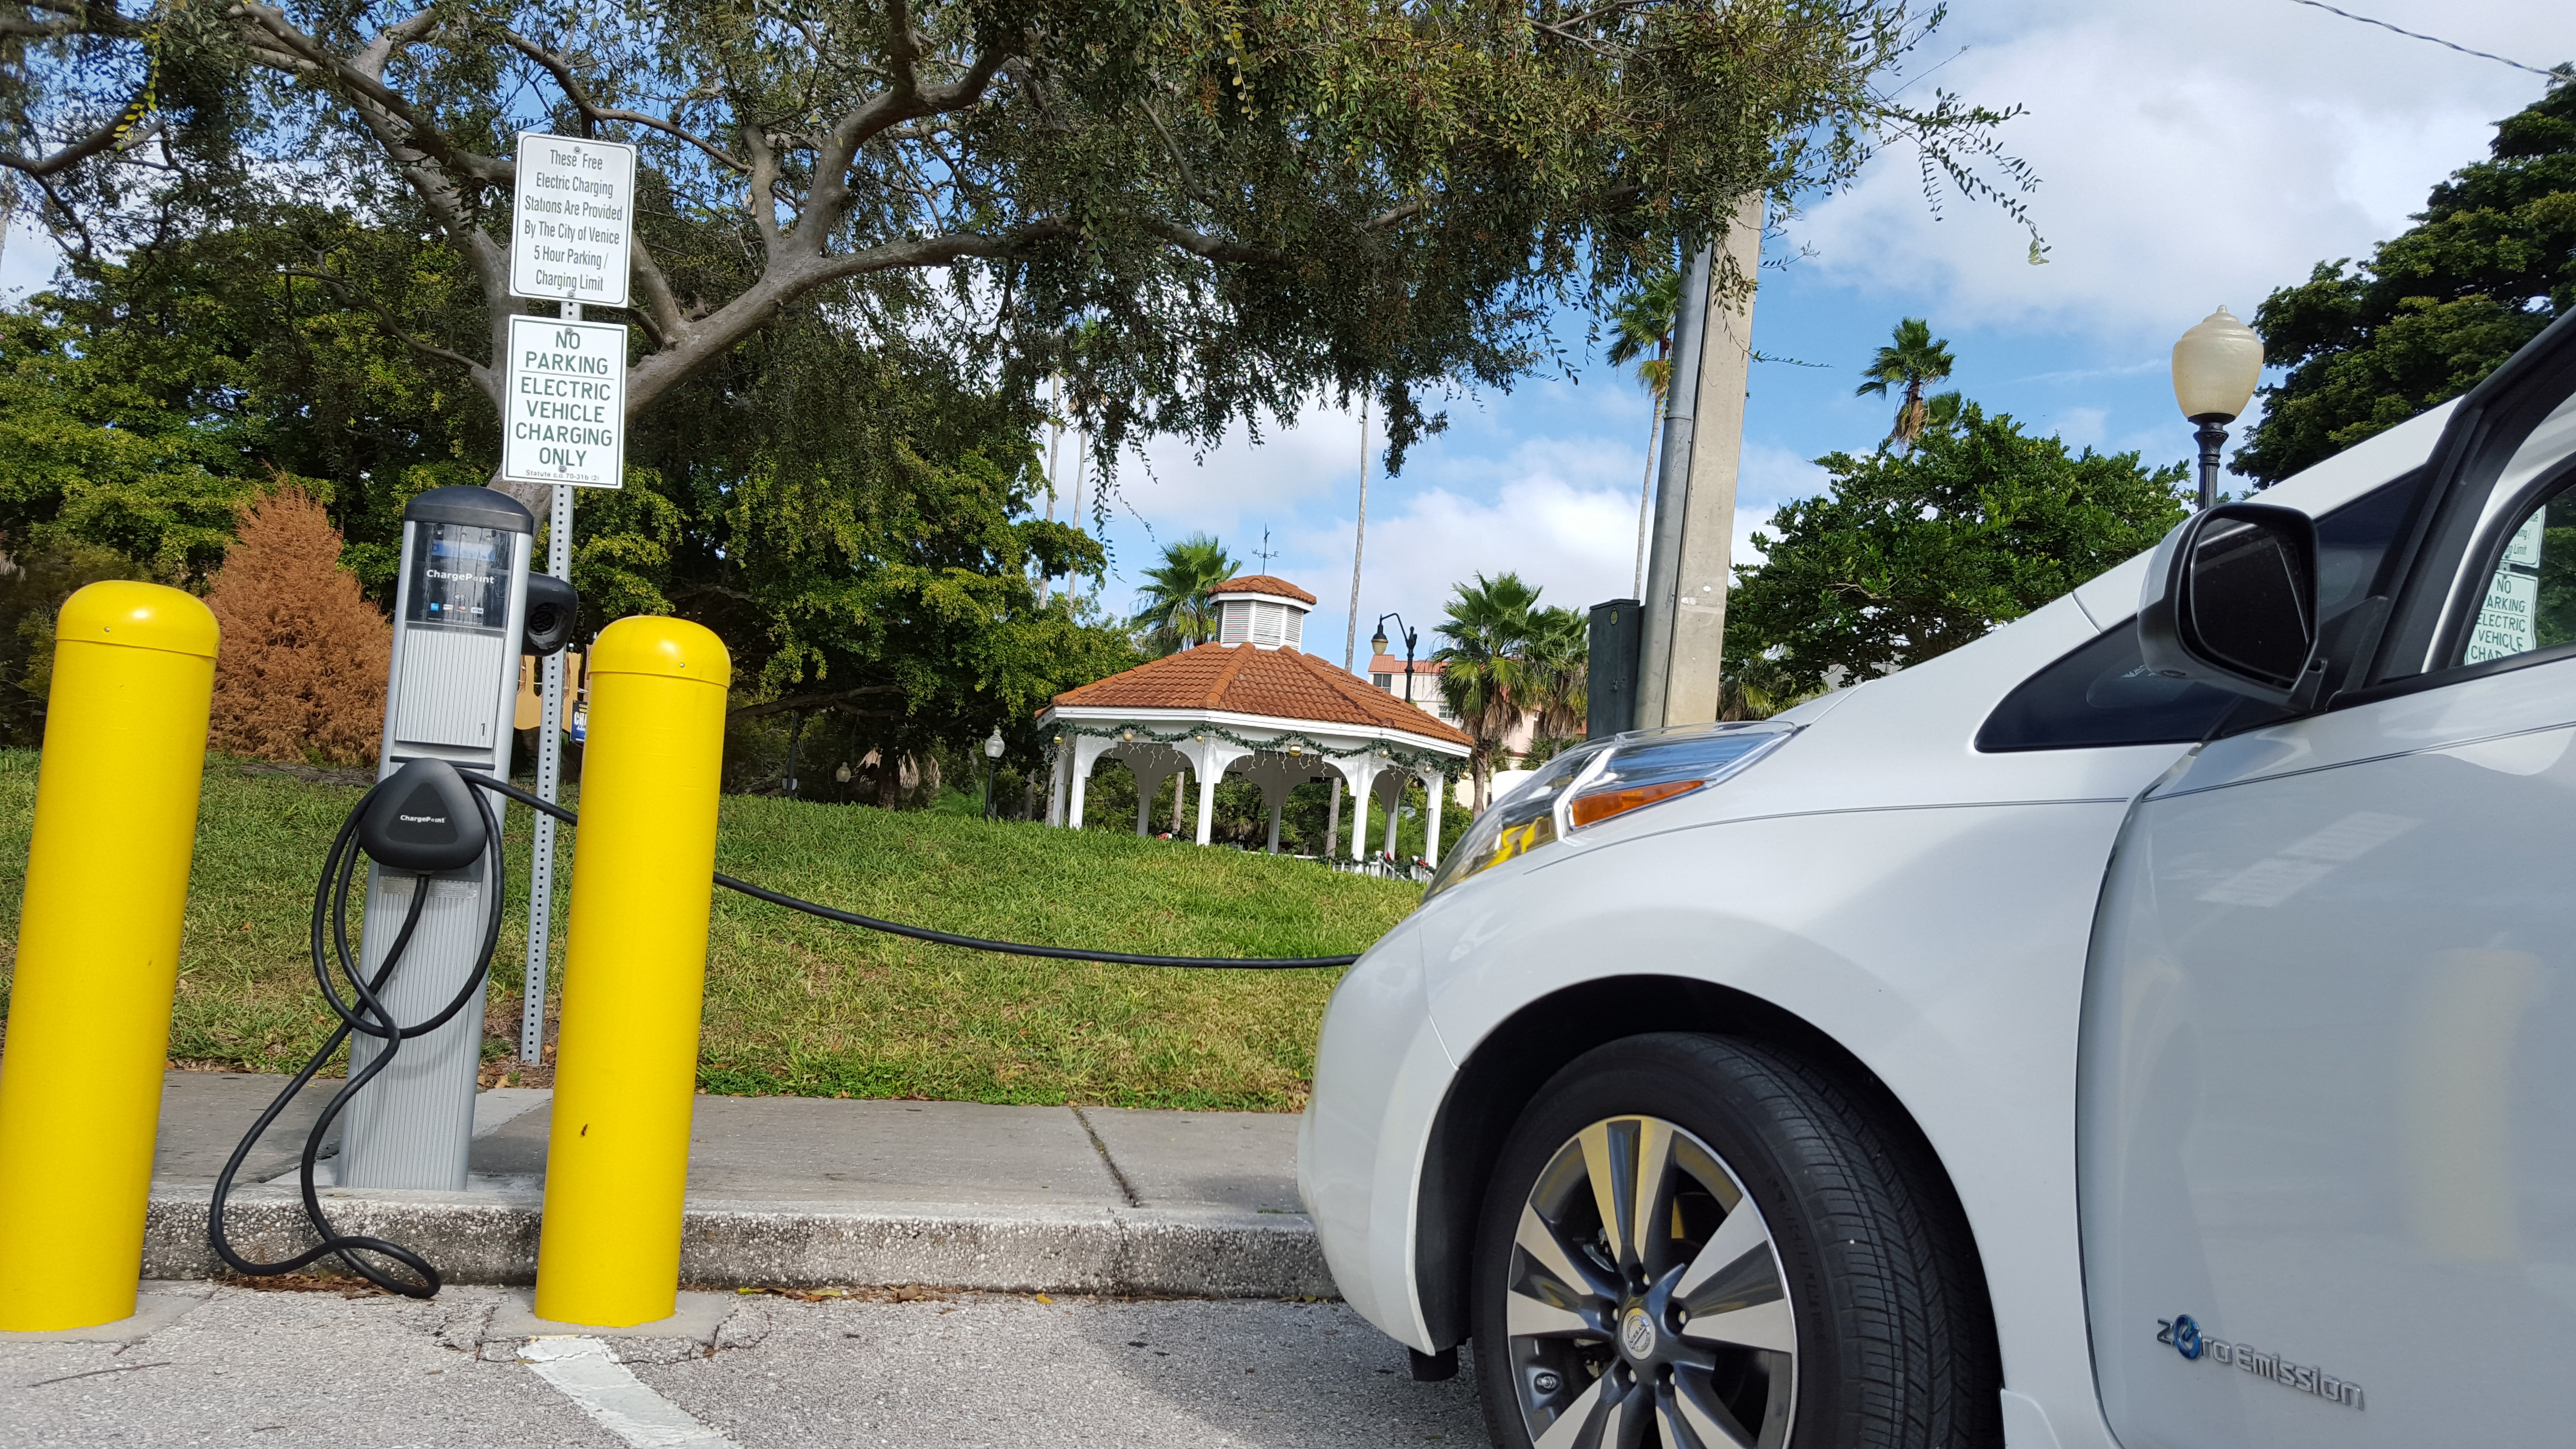 Chargepoint Now Has 30 000 Charging Stations Nearly 3x